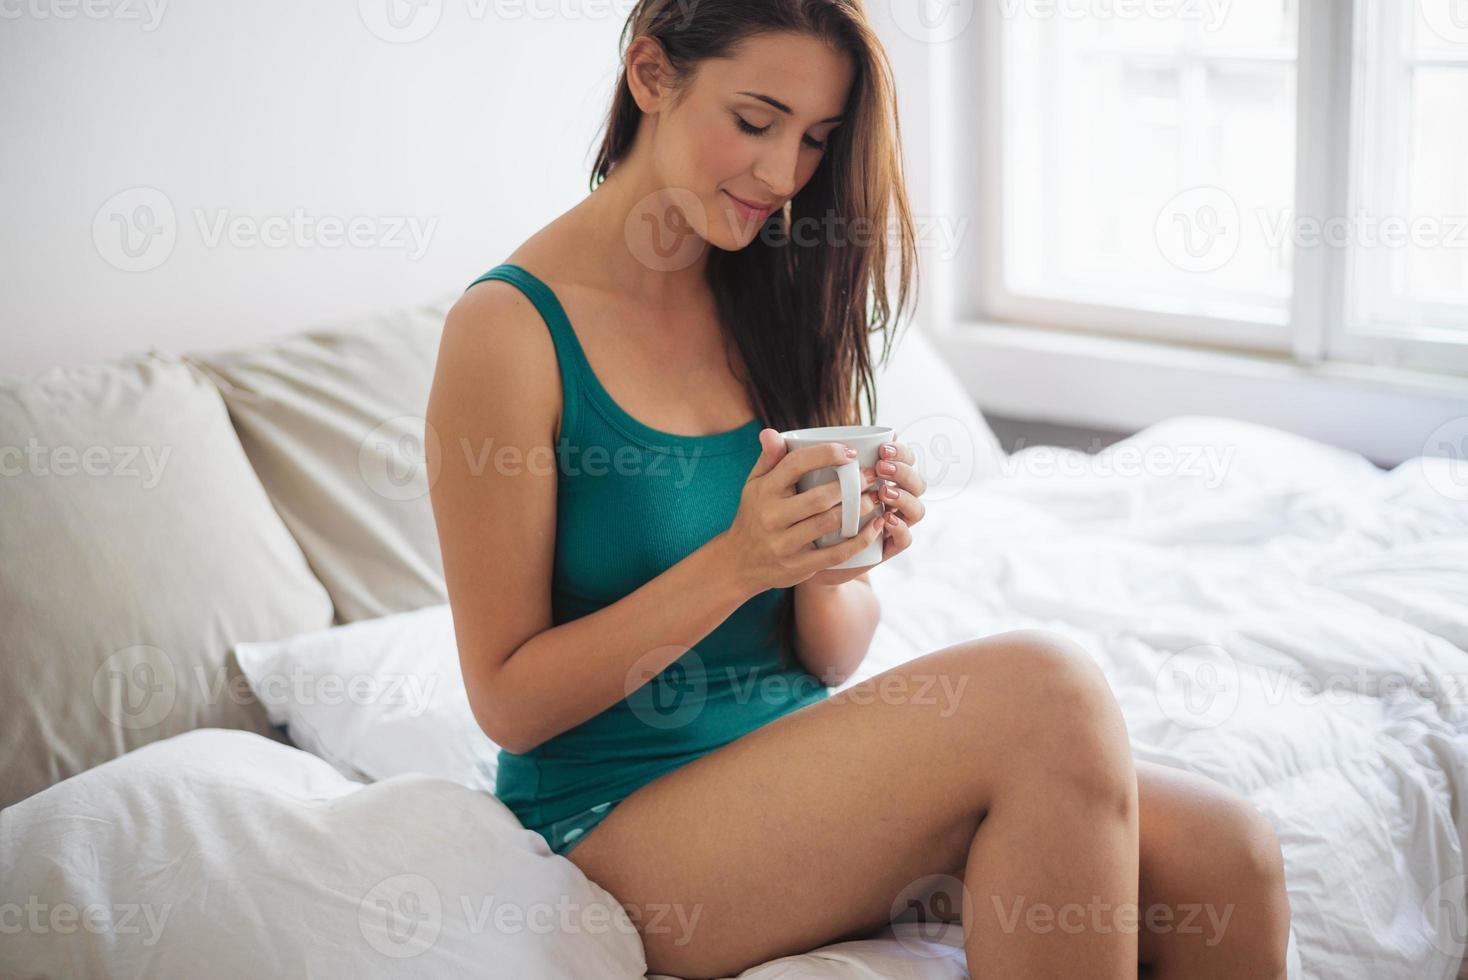 Drinking coffee in bed photo